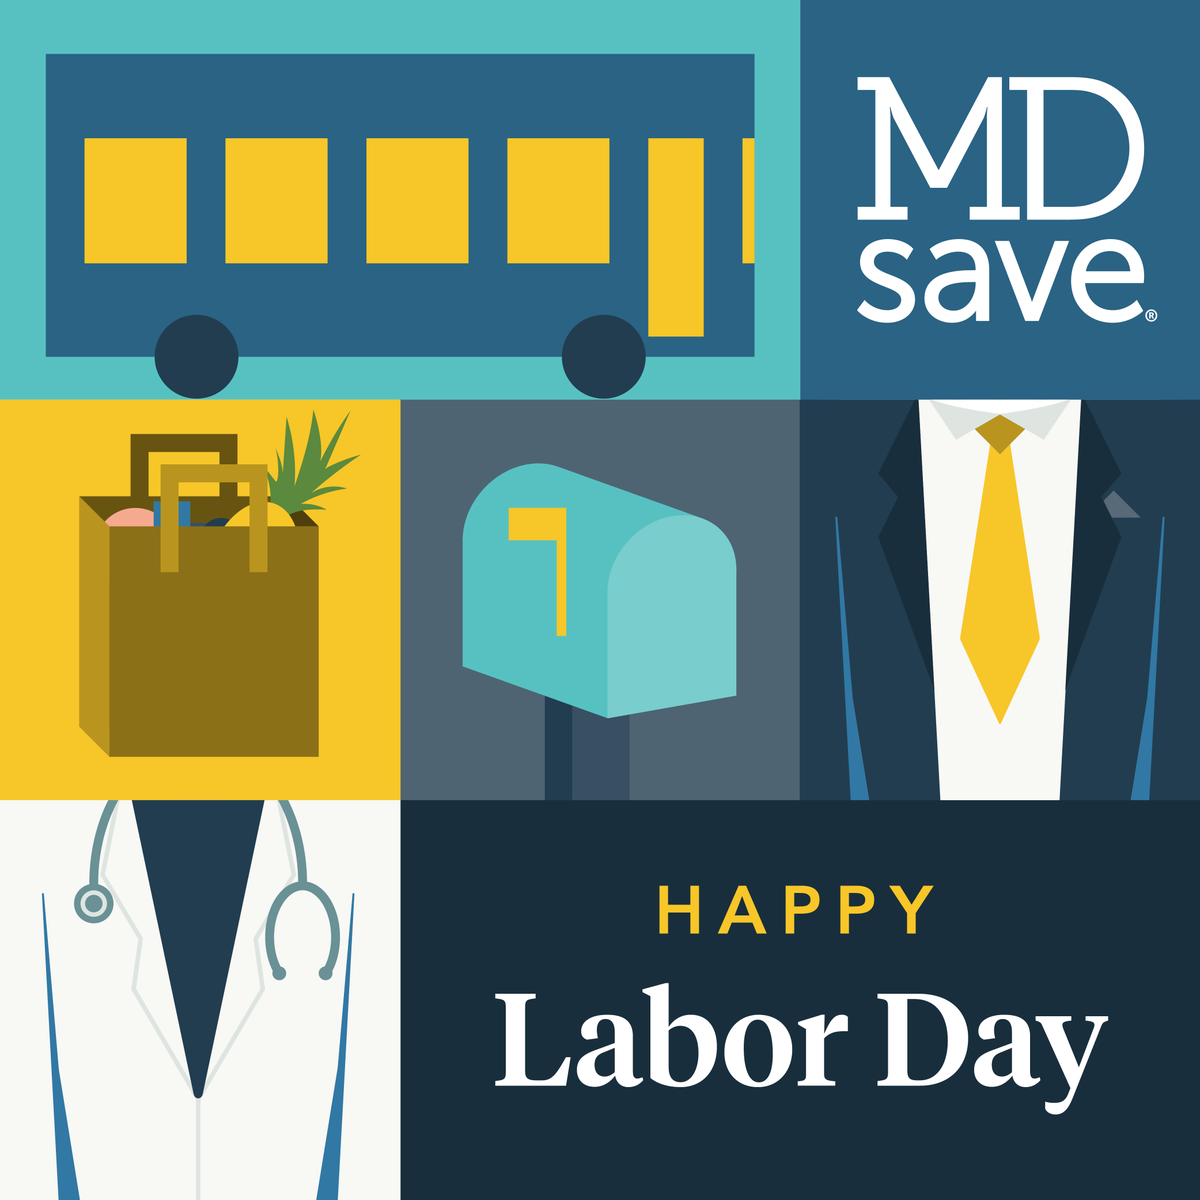 This Labor Day, we're honoring the doctors, nurses, first responders, warehouse workers, grocery store employees, delivery drivers, postal carriers, and everyone working on the frontlines of the COVID-19 outbreak. Join us by tagging an essential worker you appreciate! #laborday https://t.co/2kuveaP6PF